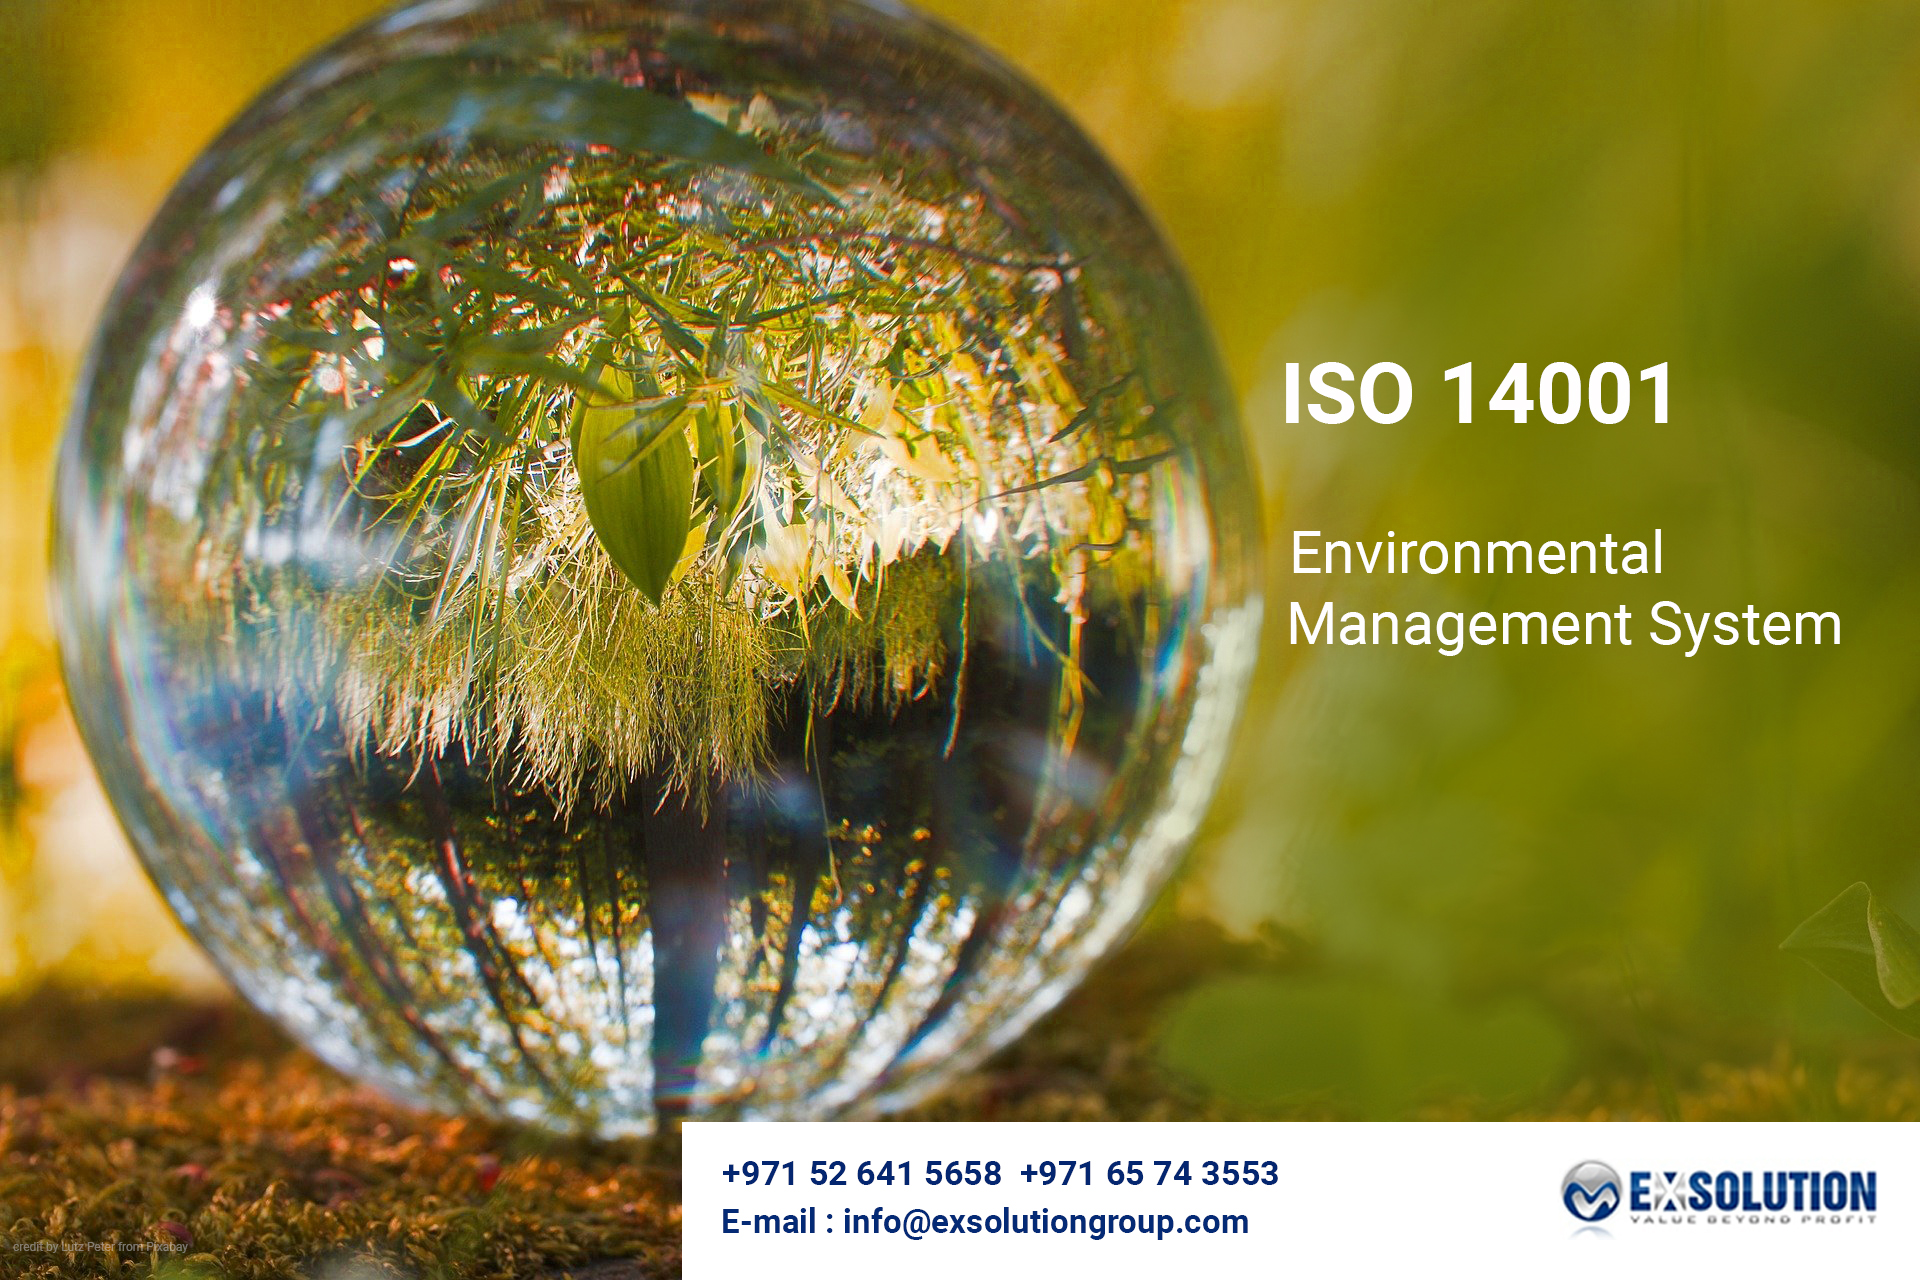 ISO 14001 Environmental Management System